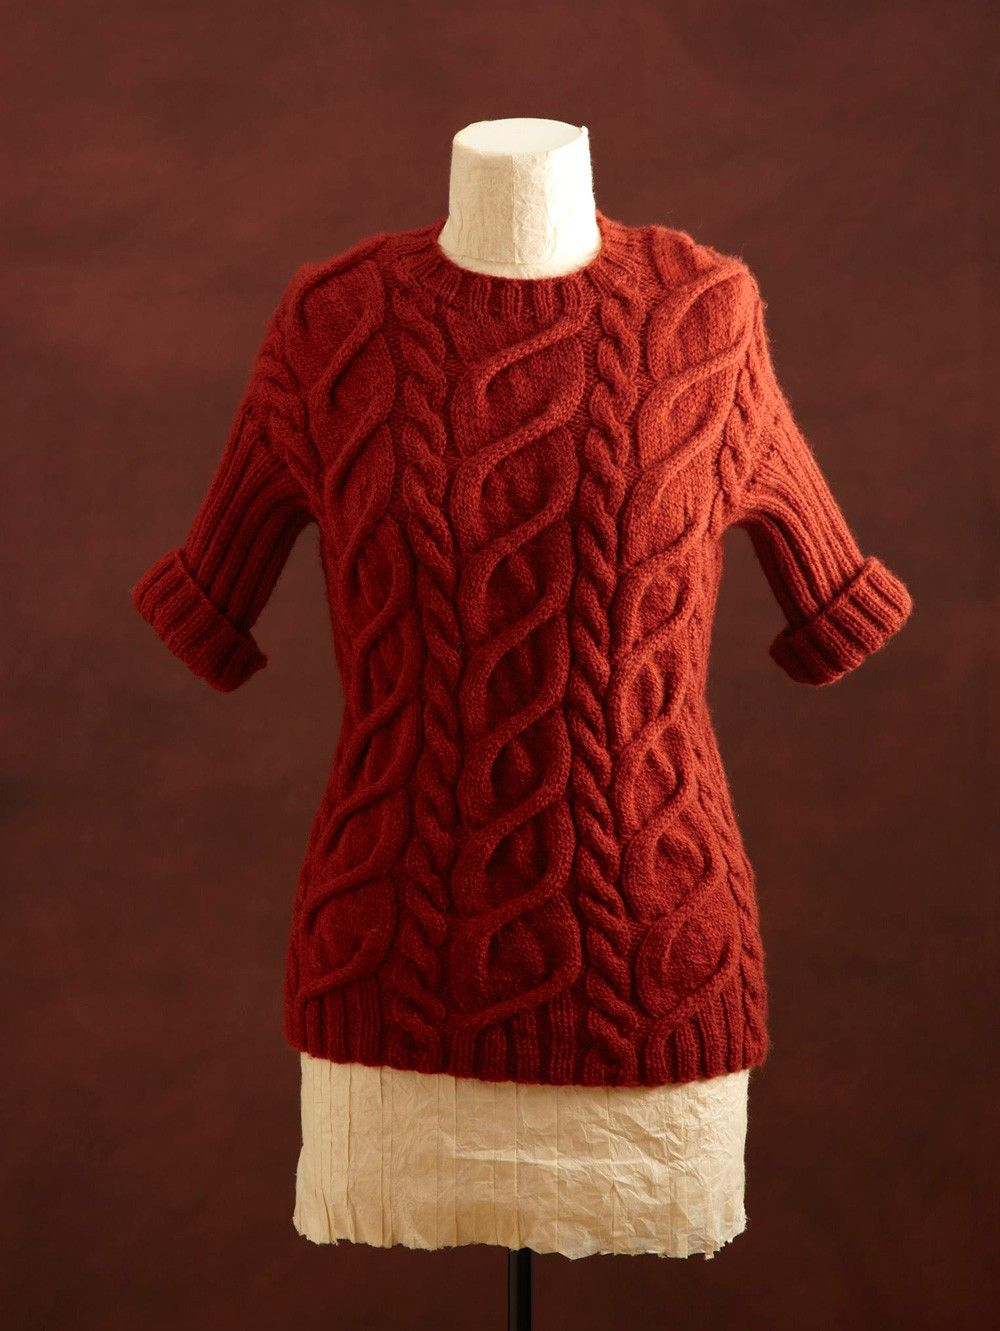 Cabled Pullover And Cowl Pattern (Knit) | Points Irlandais ...